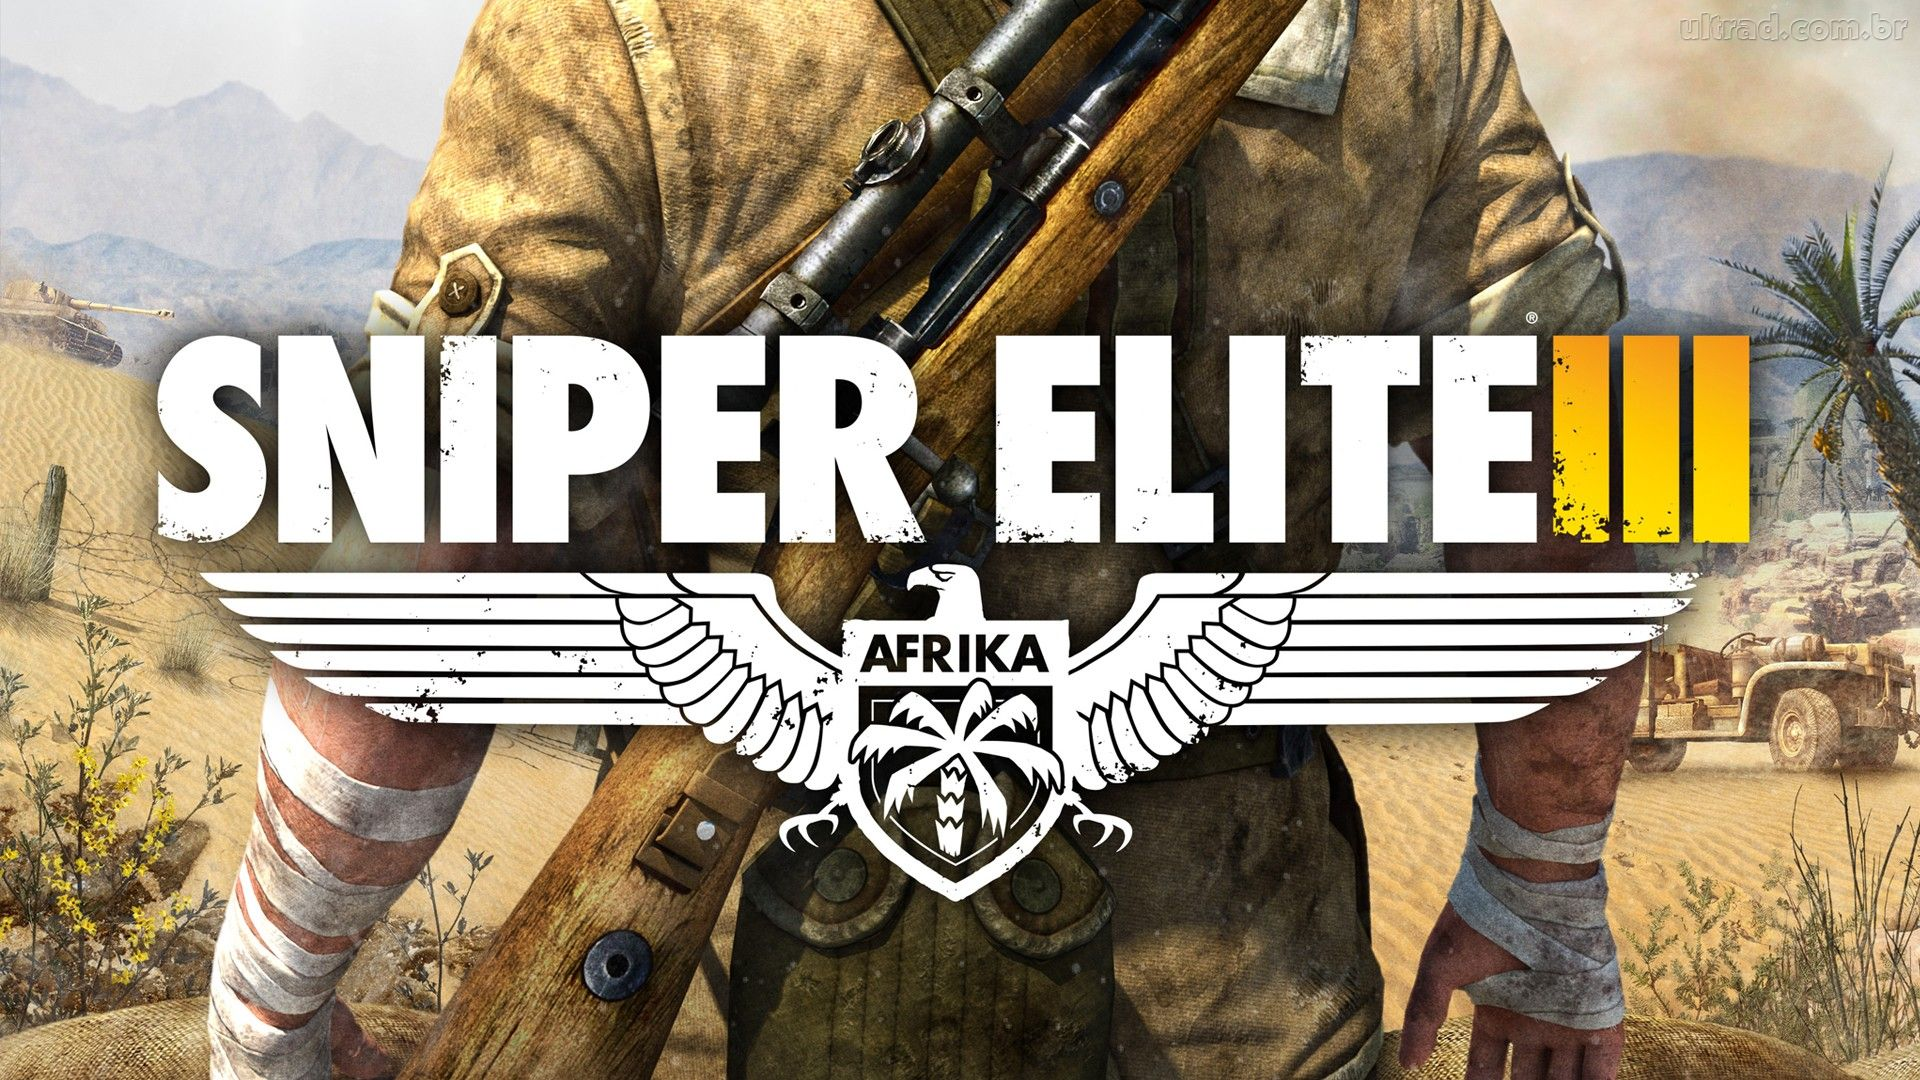 Best 47 Sniper Elite III Wallpaper on HipWallpaper Elite 1920x1080